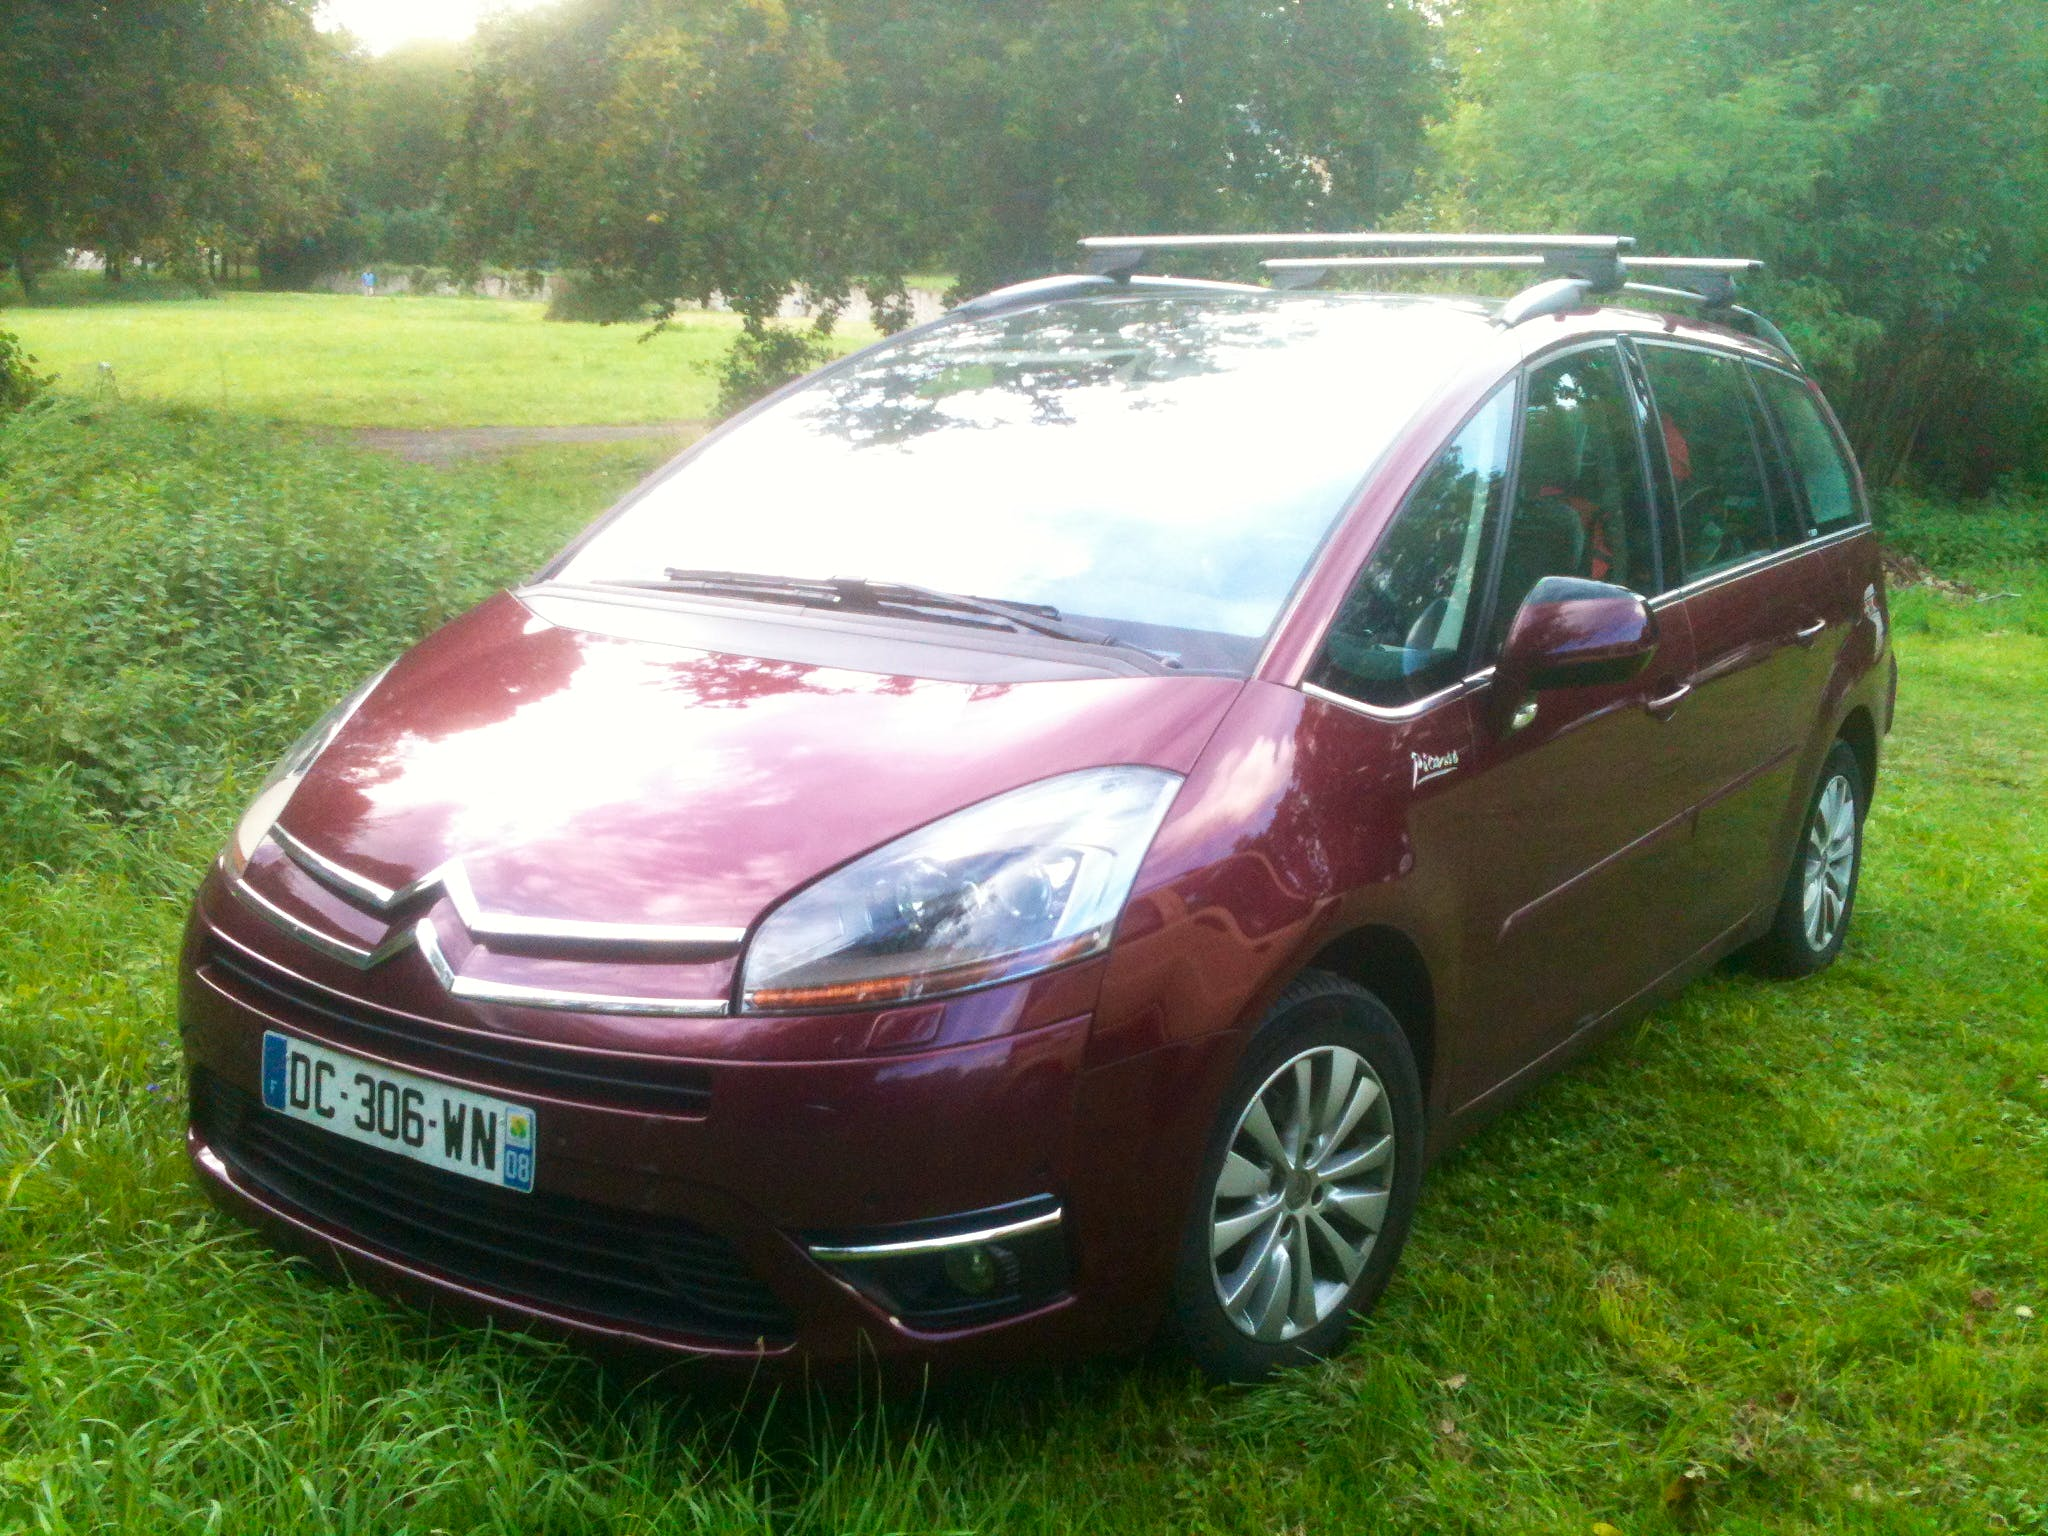 Citroen C4 Grand Picasso 2.0 HDI, 2008, Diesel, automatique, 7 places